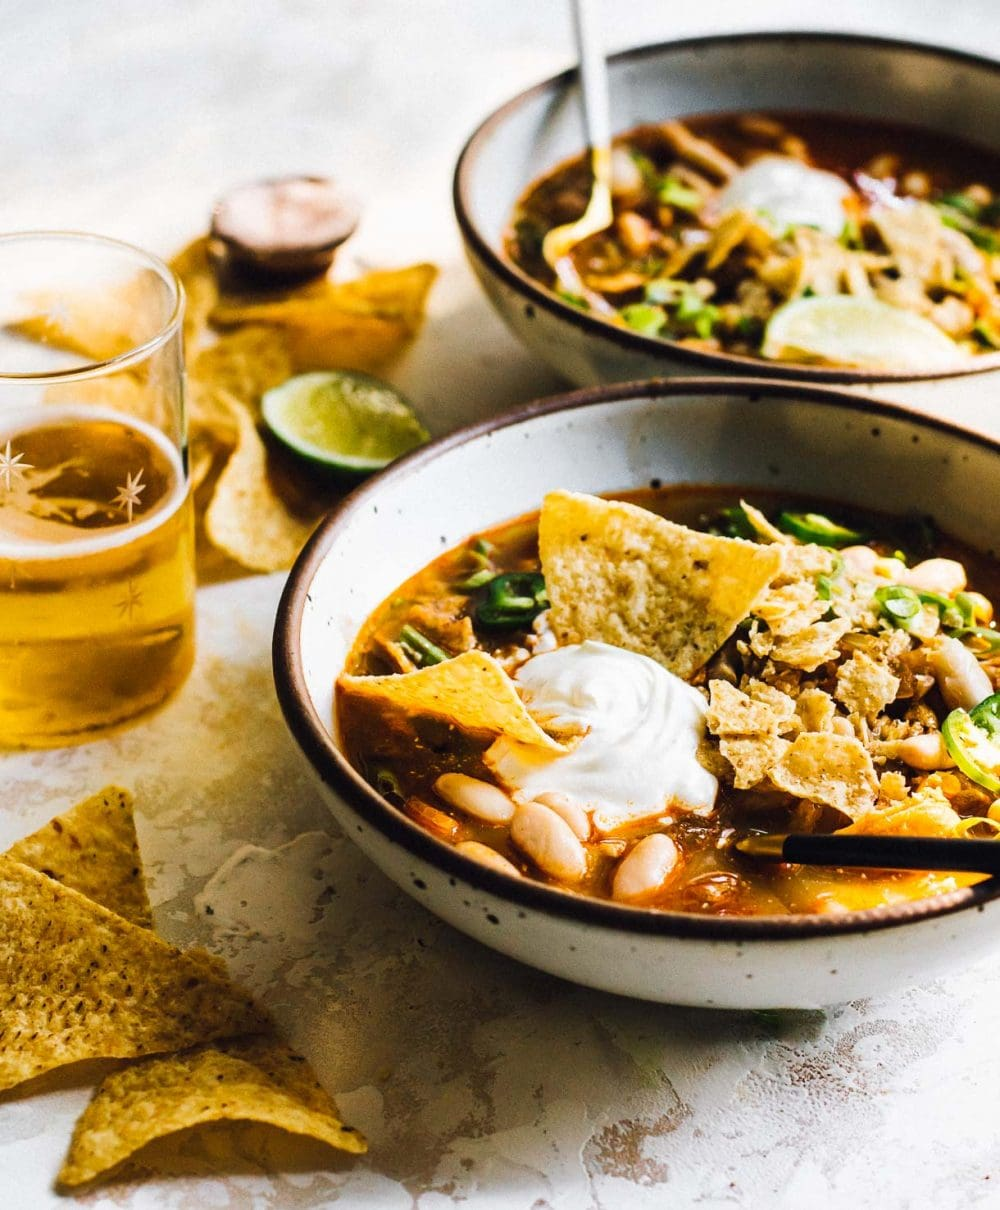 bowl of green chili chicken soup with tortilla chips in it, dollop of sour cream on top, tortilla chips scattered around bowl and glass of beer to the left